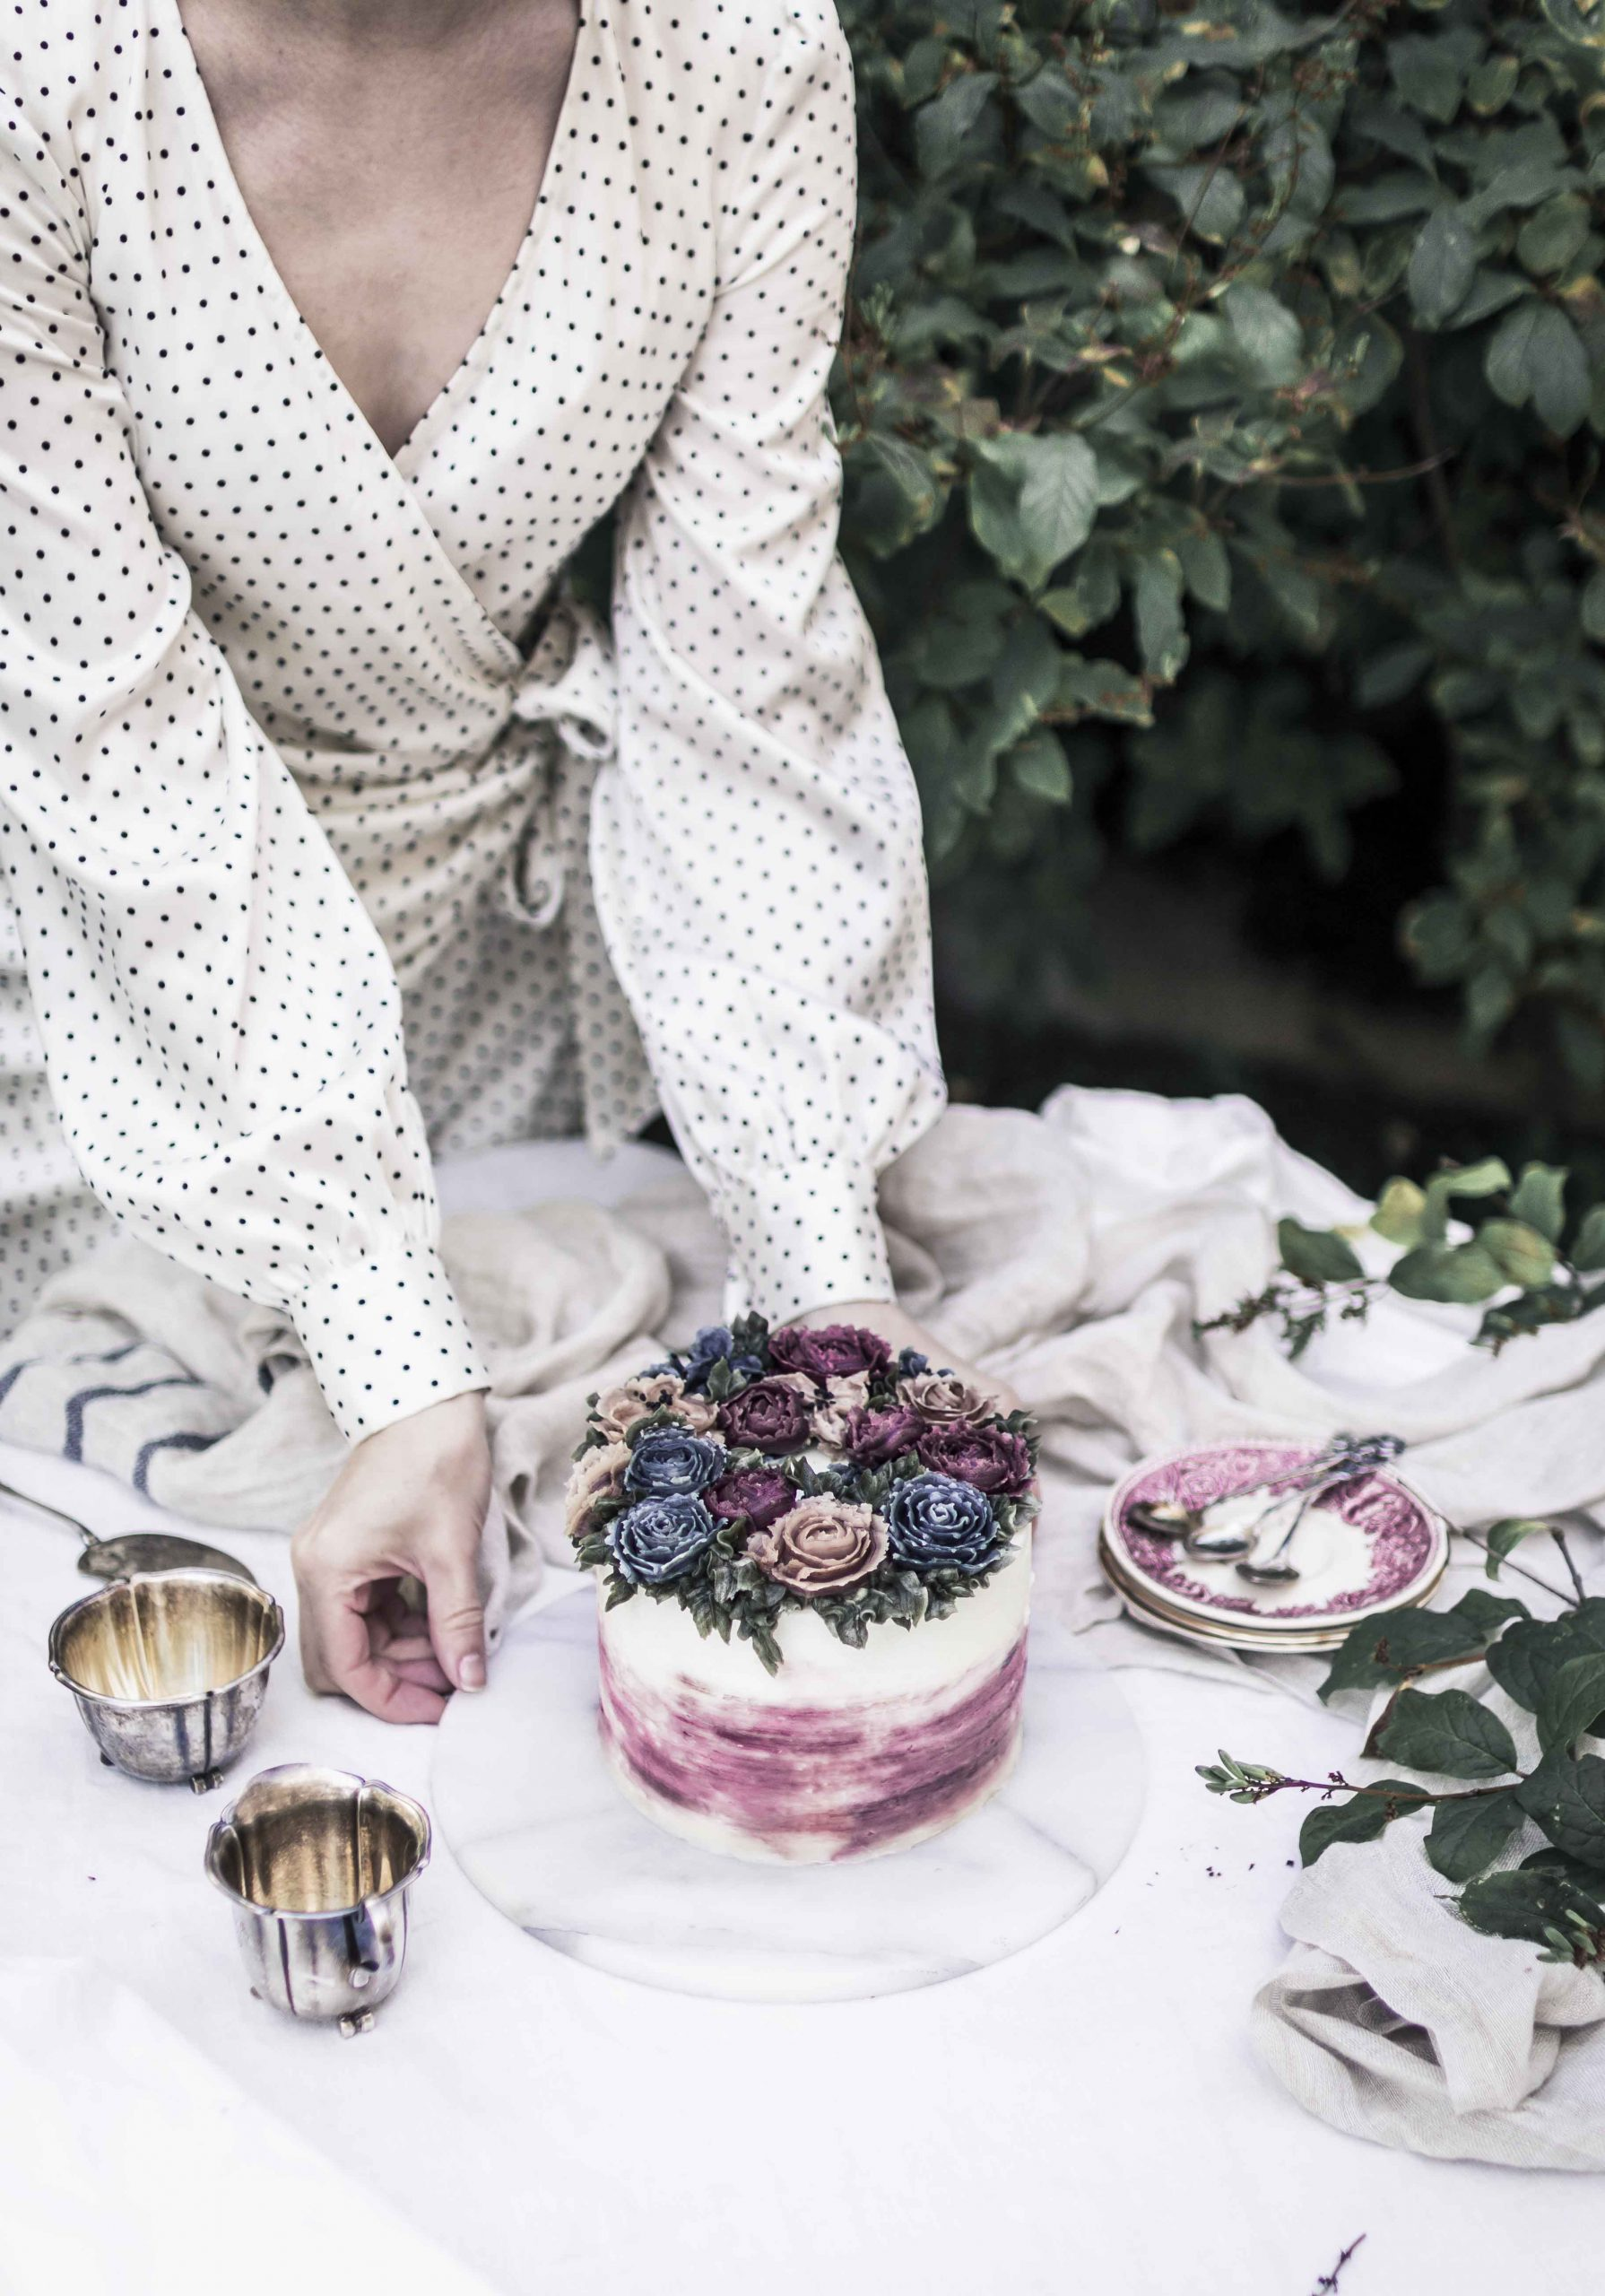 Food styling Emma Ivane ruokastailaus